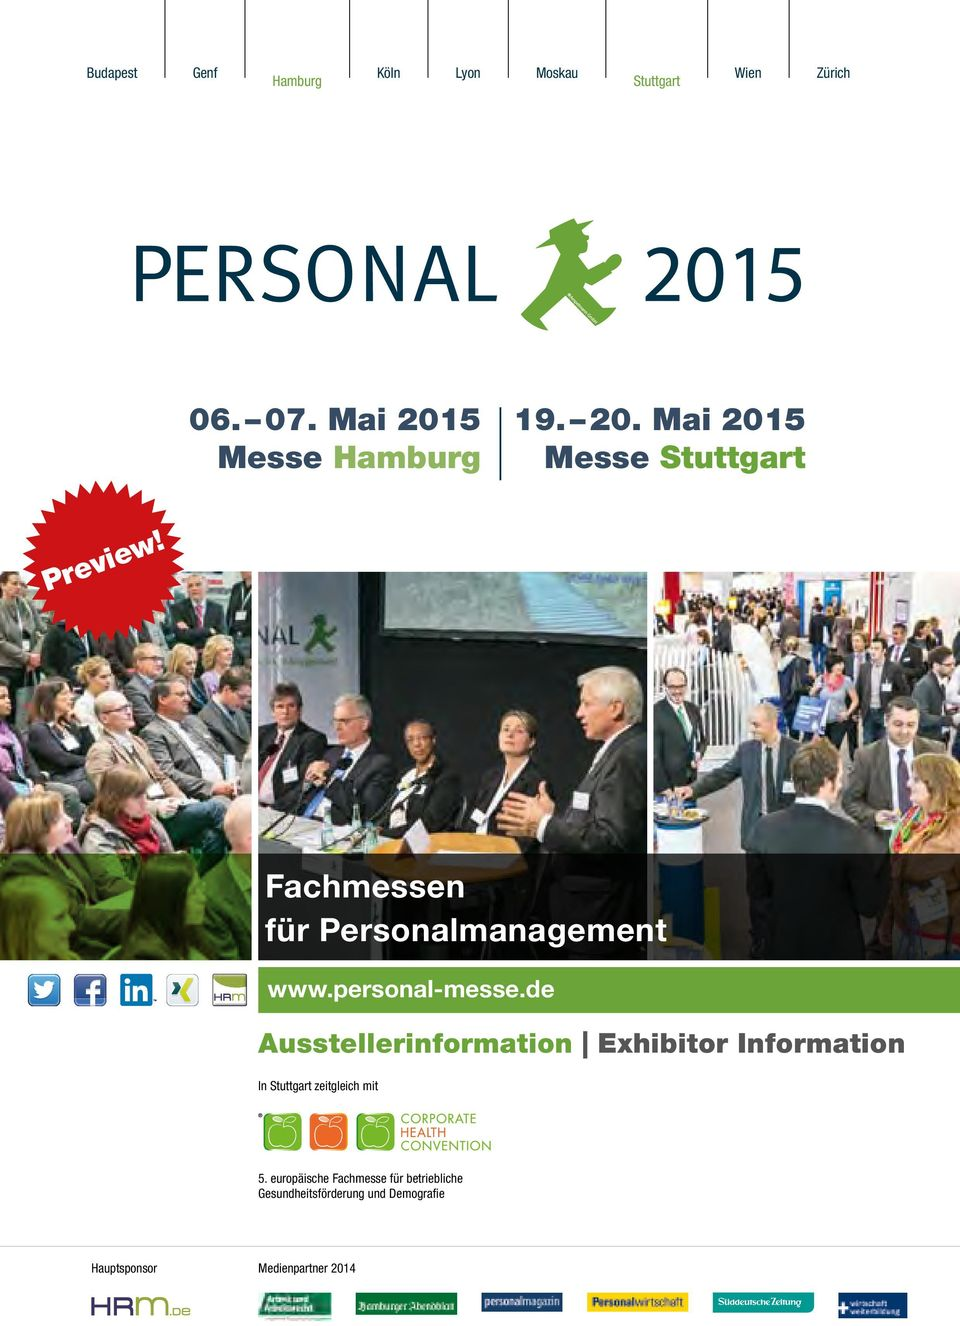 personal-messe.